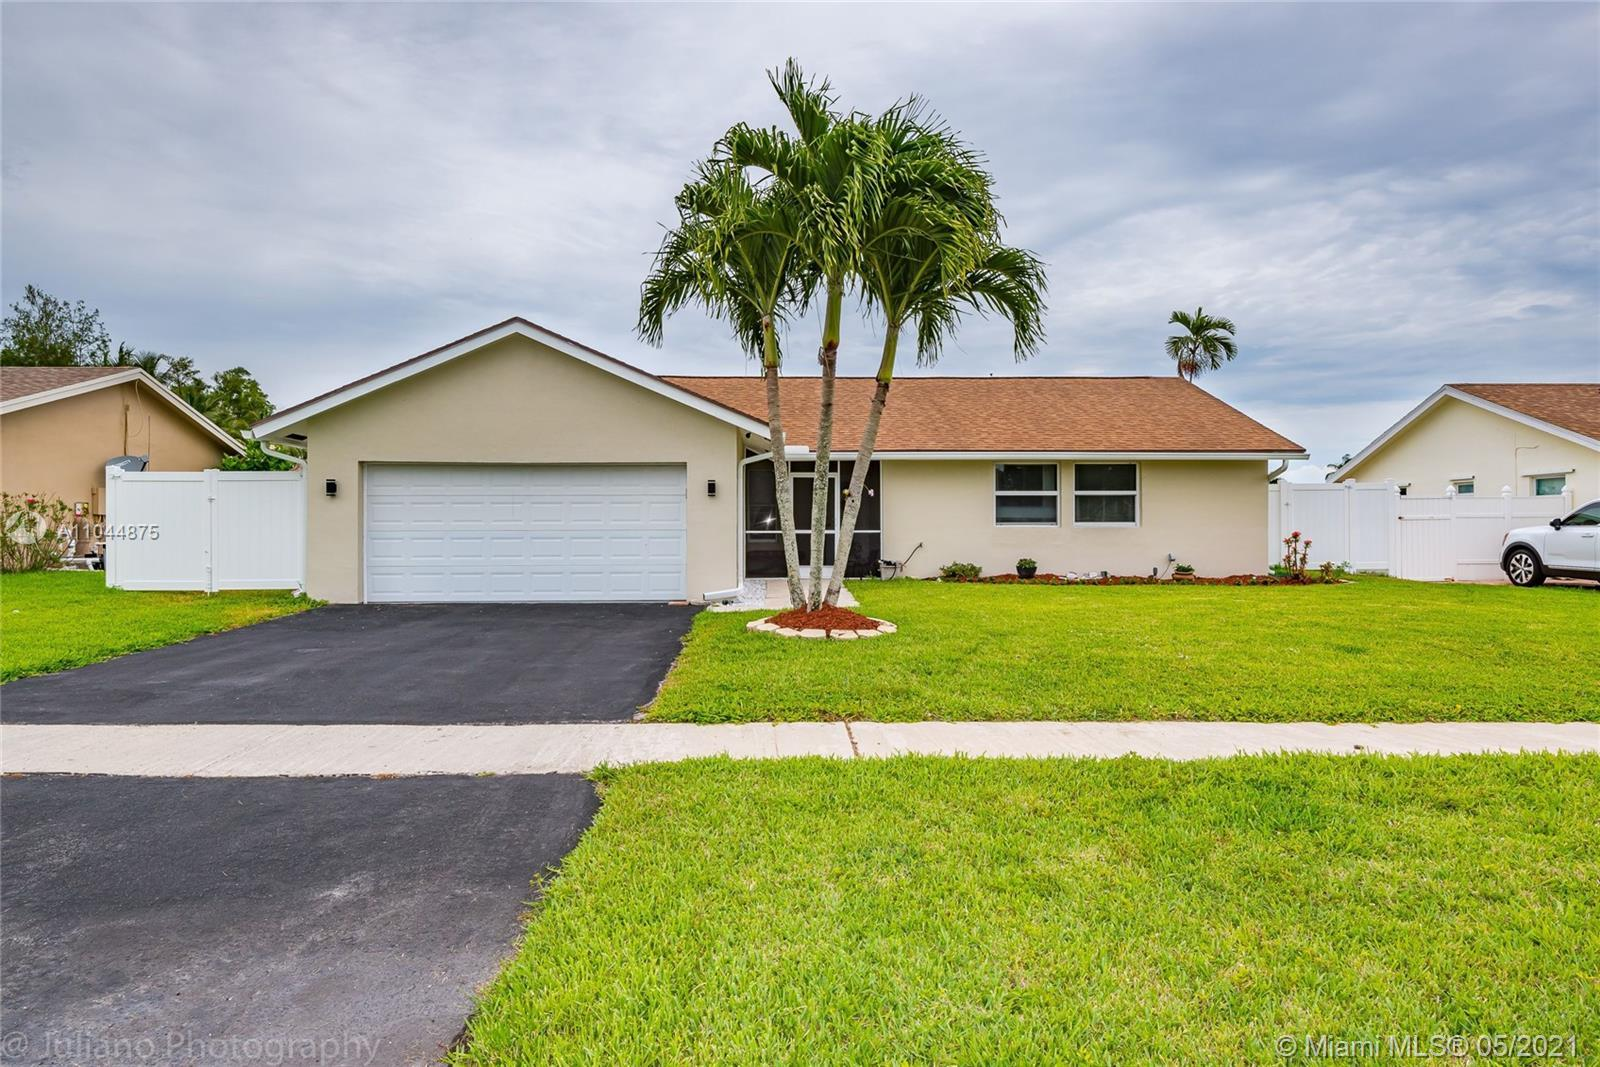 THIS BEAUTIFUL HOME IS TRULY MOVE IN READY! IT HAS BEEN COMPLETELY UPDATED & UPGRADED! IT HAS 4 BEDR